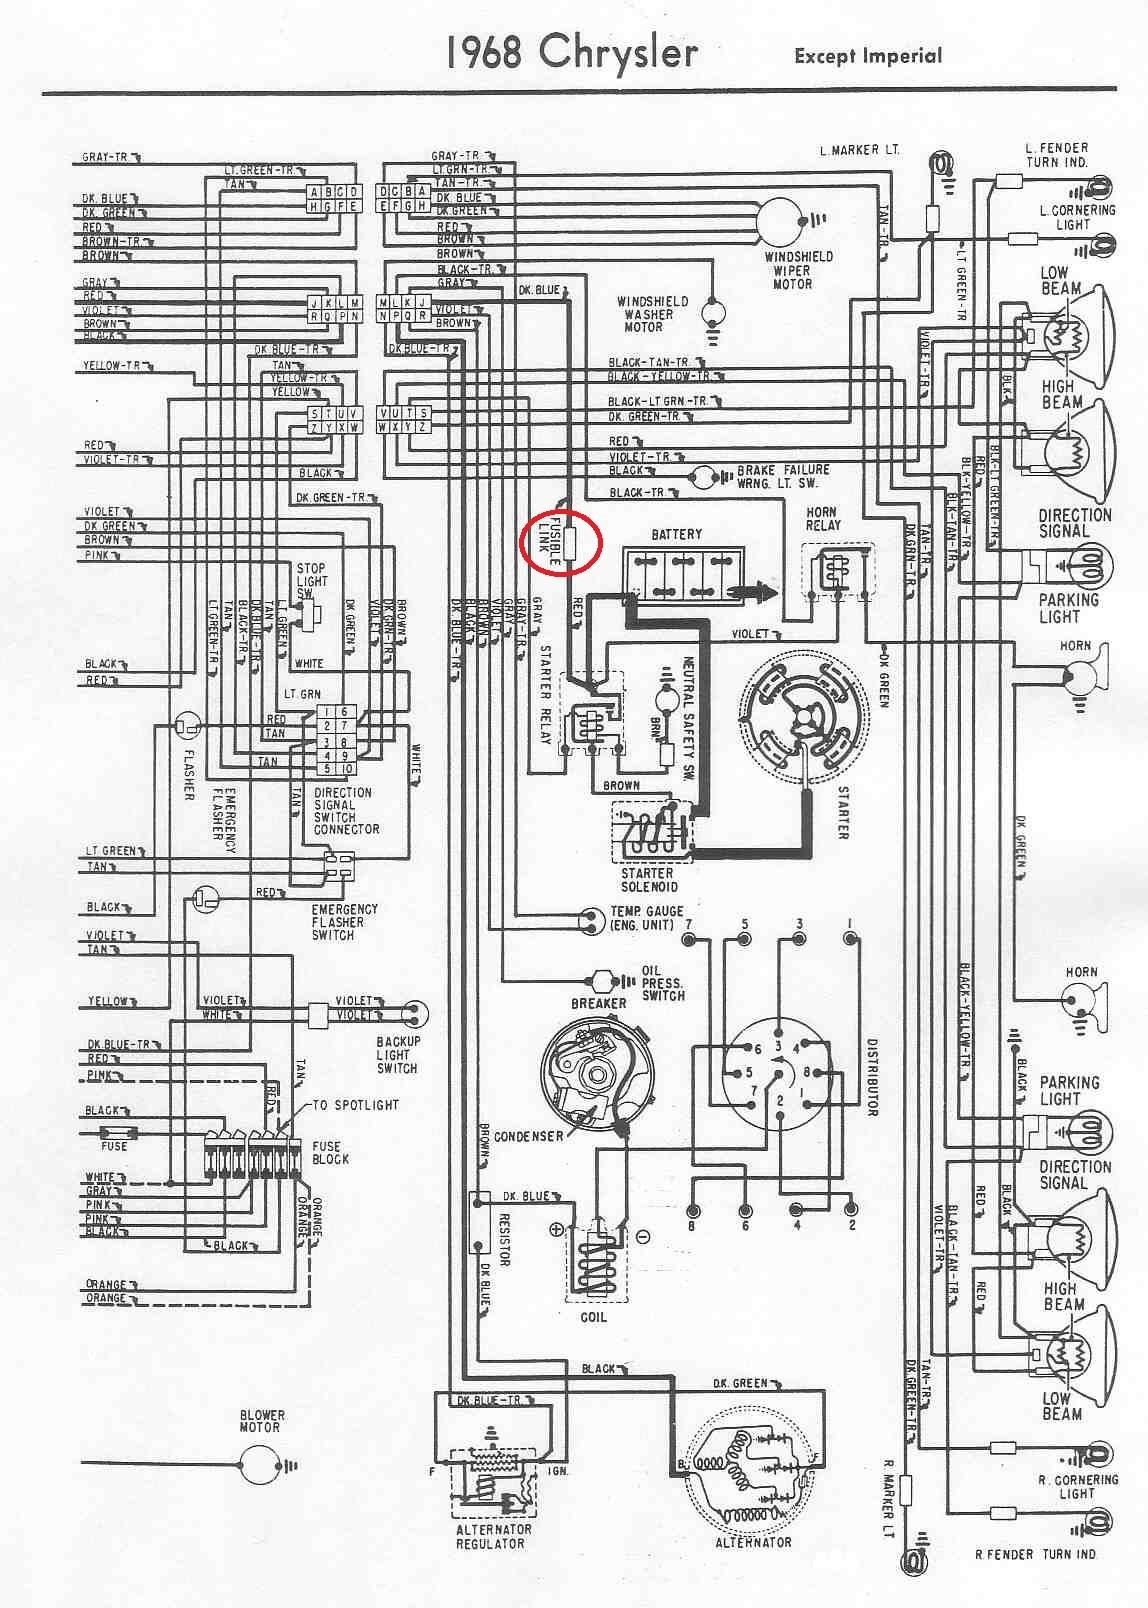 hight resolution of 1950 plymouth engine wiring diagram manual e book 1959 chrysler wiring diagram